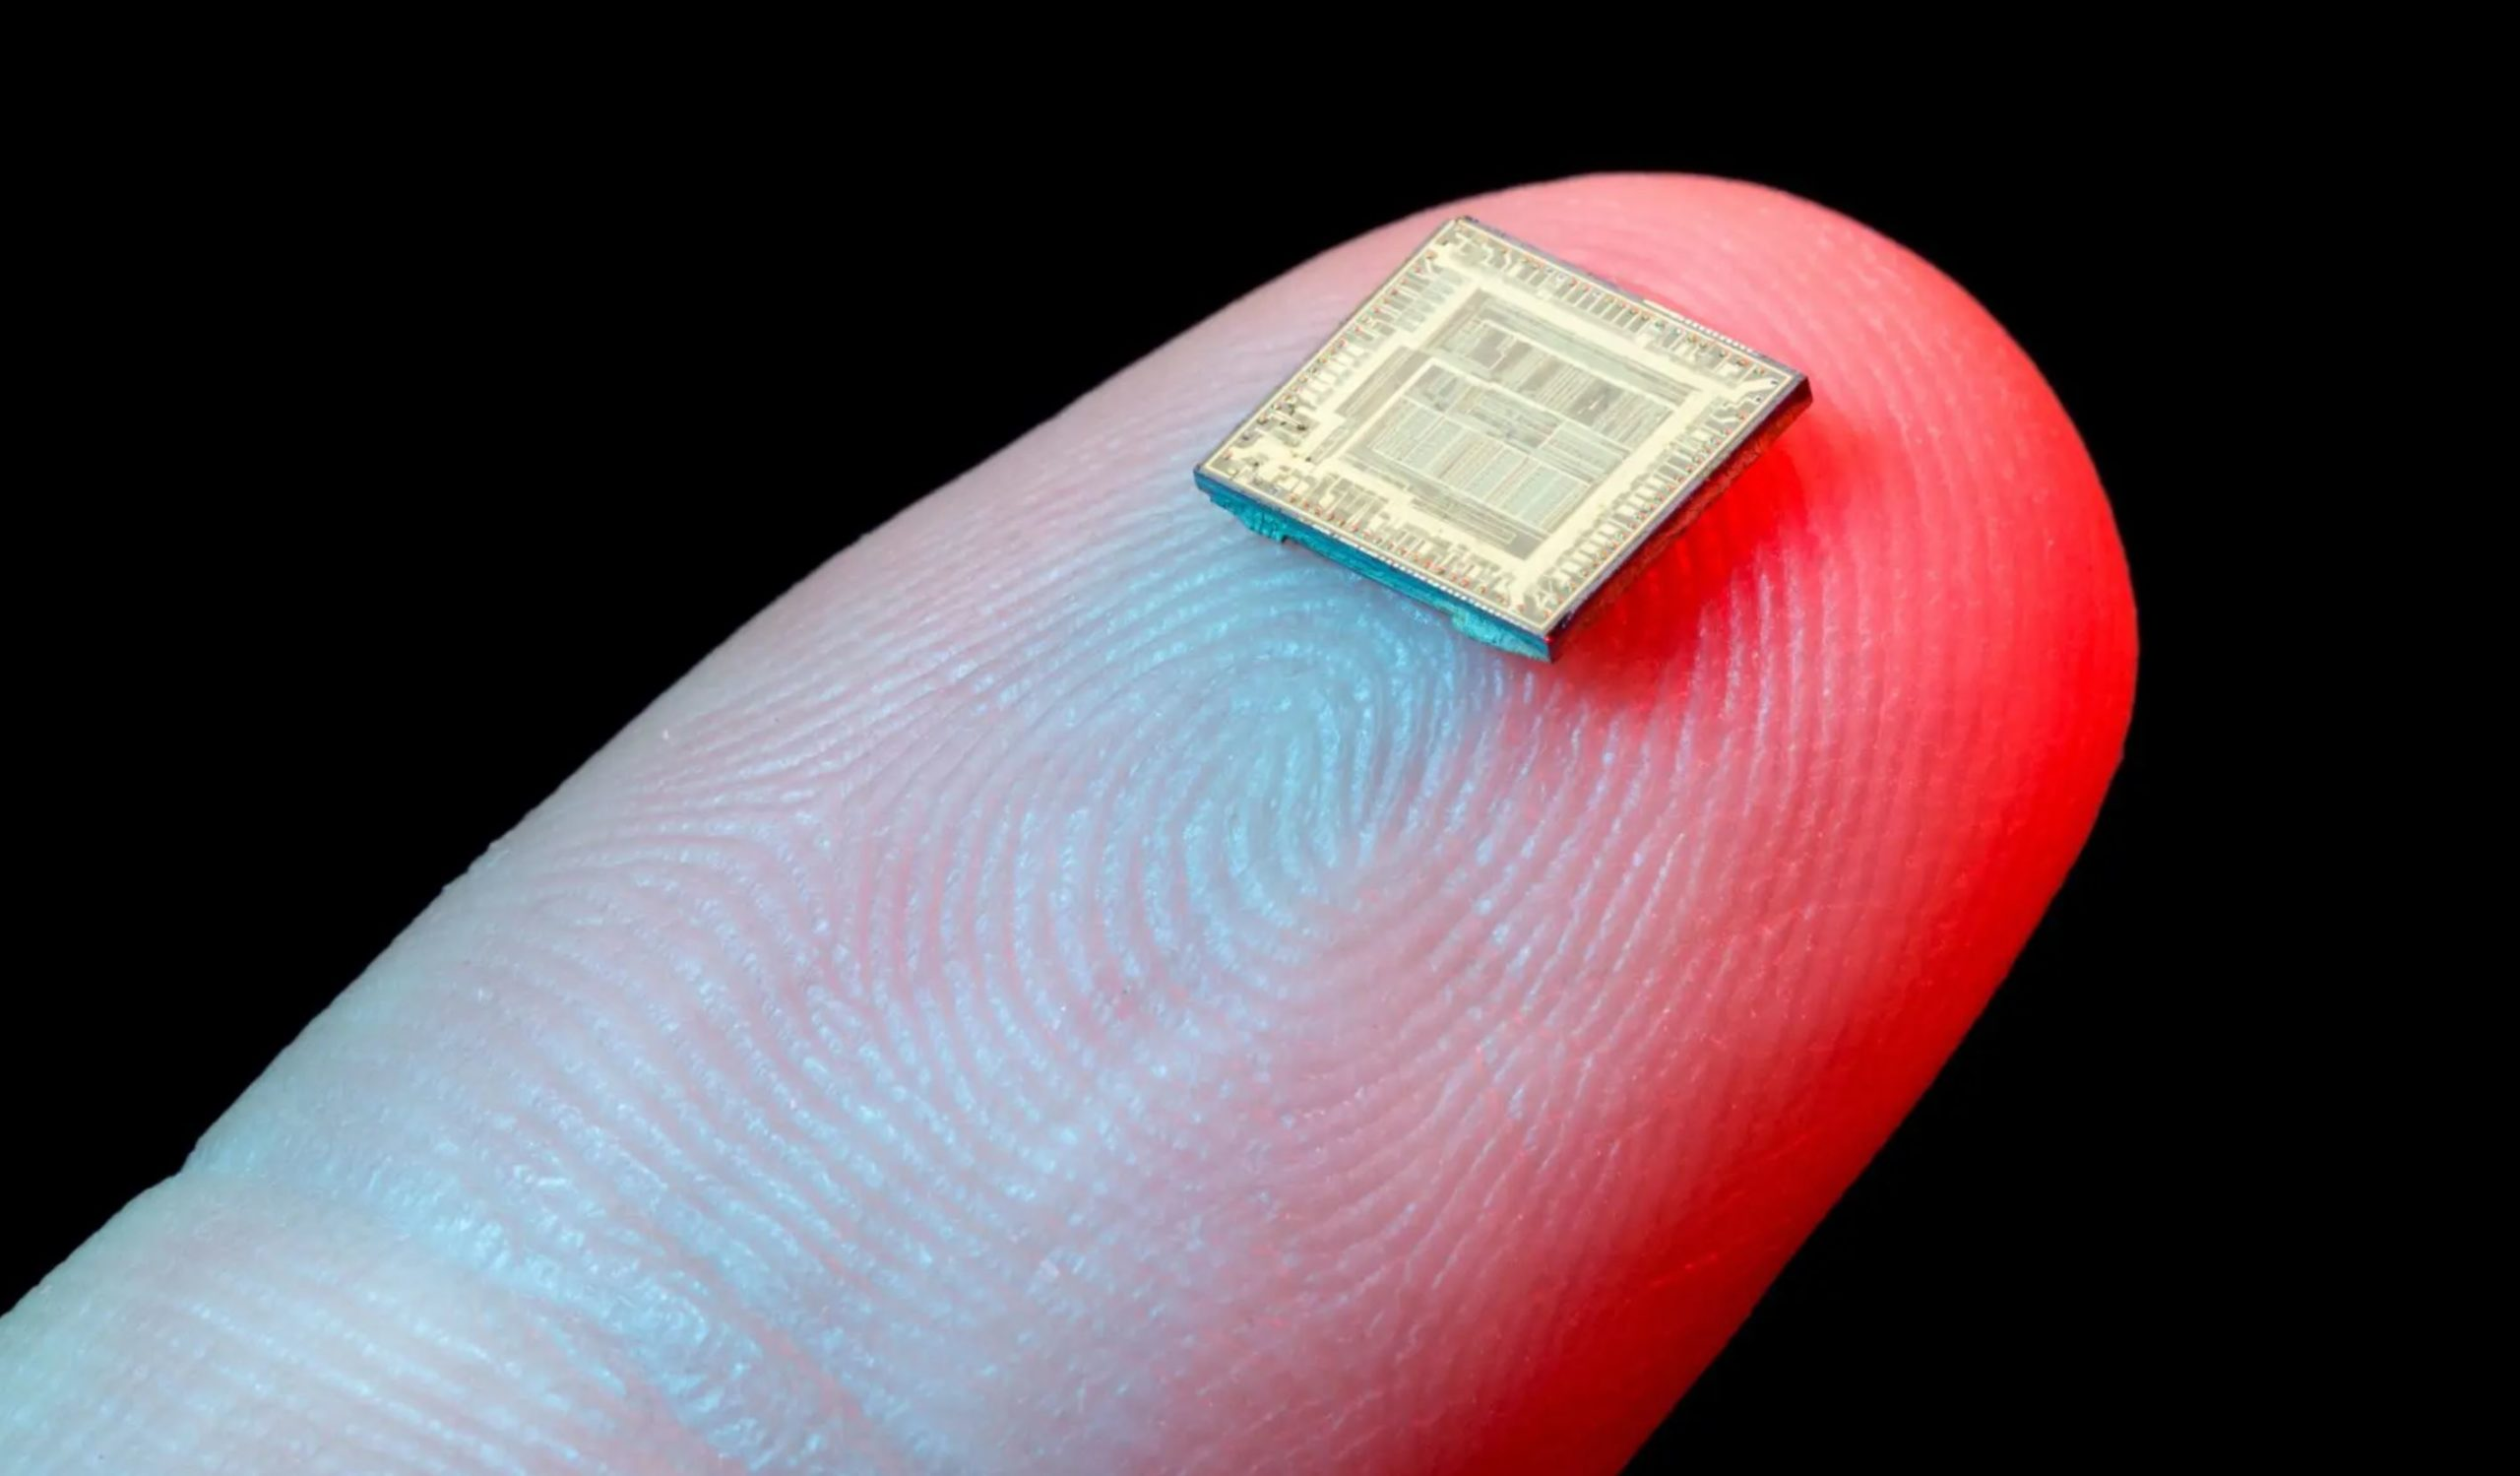 New Michigan Bill Could Make It Illegal For Companies To Demand Microchip Implants for Workers